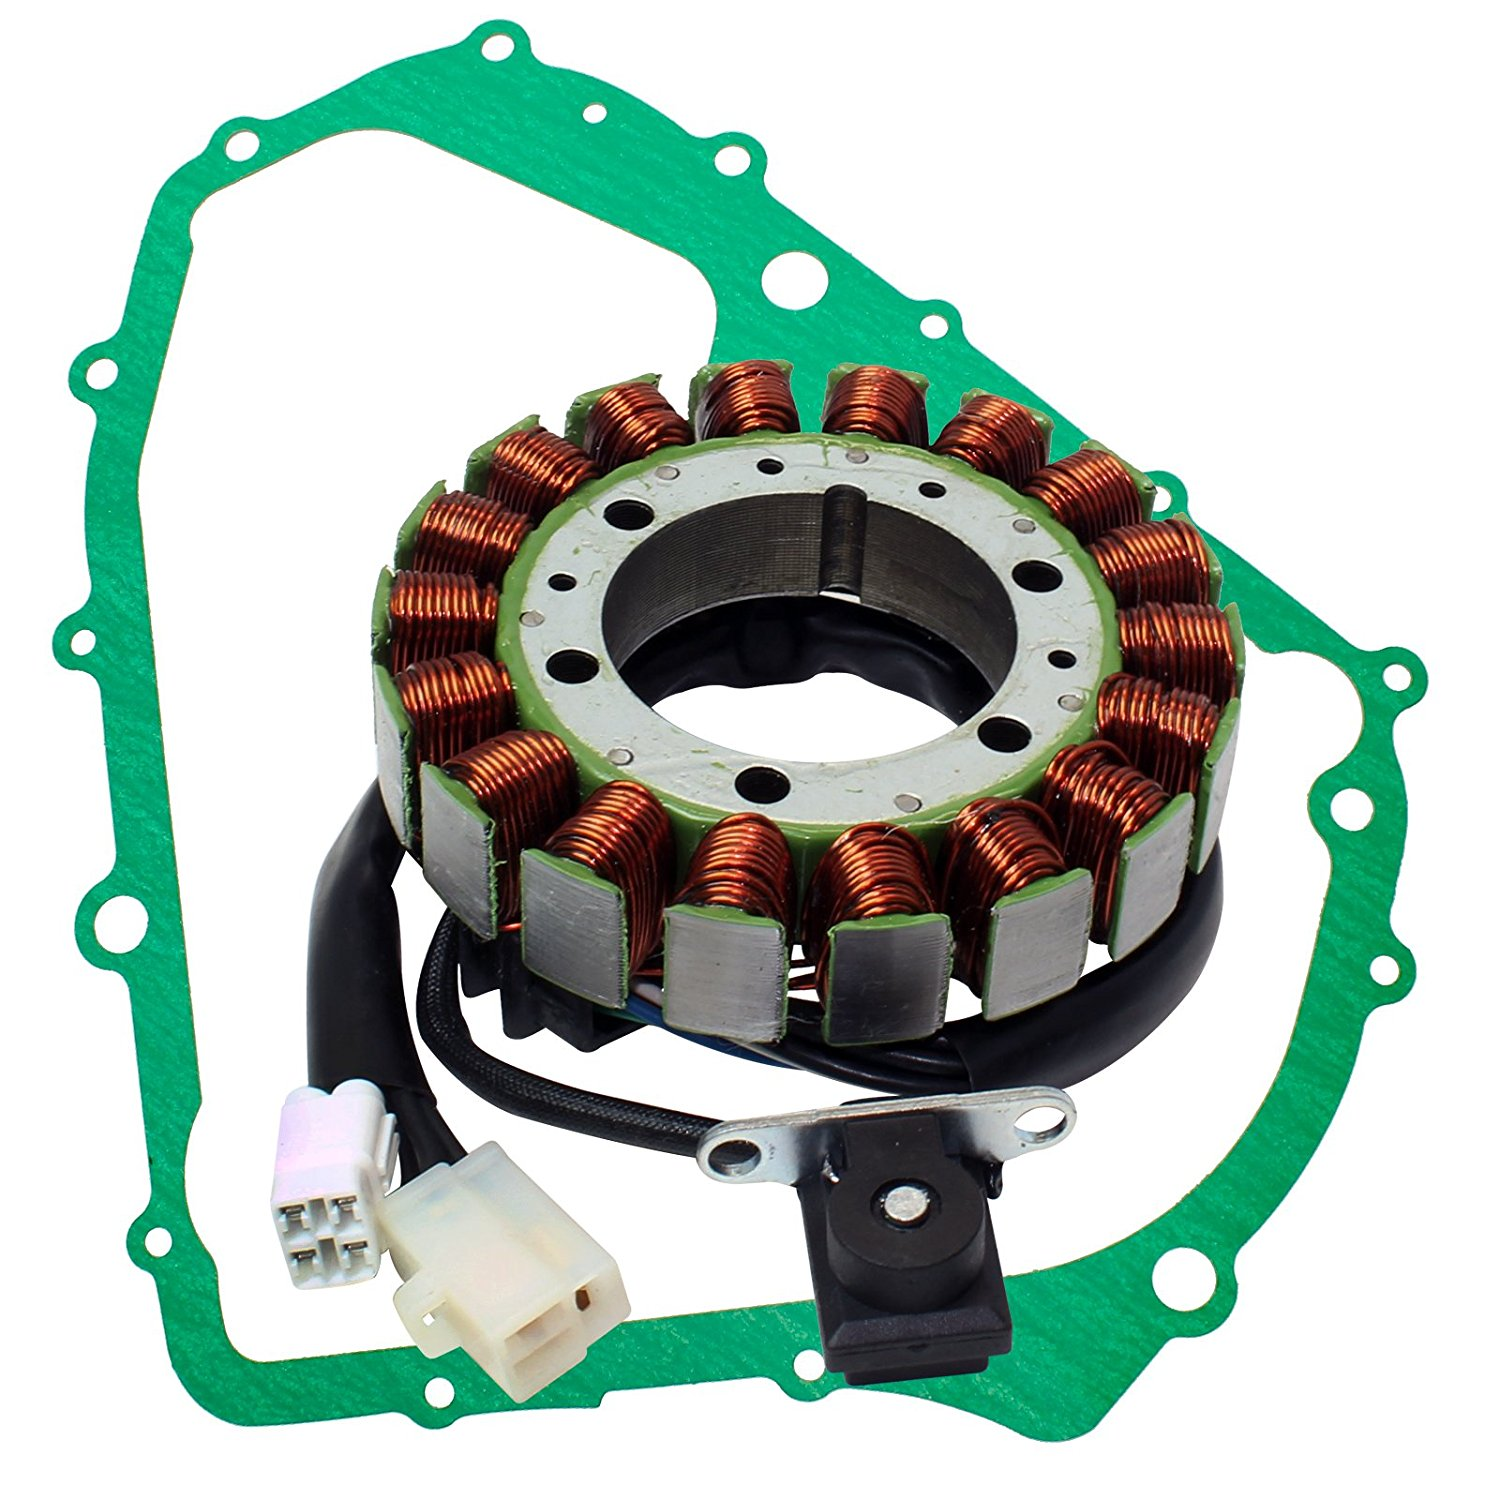 CALTRIC STATOR & GASKET FITS ARCTIC CAT 425 CR 4X4 2011-2012